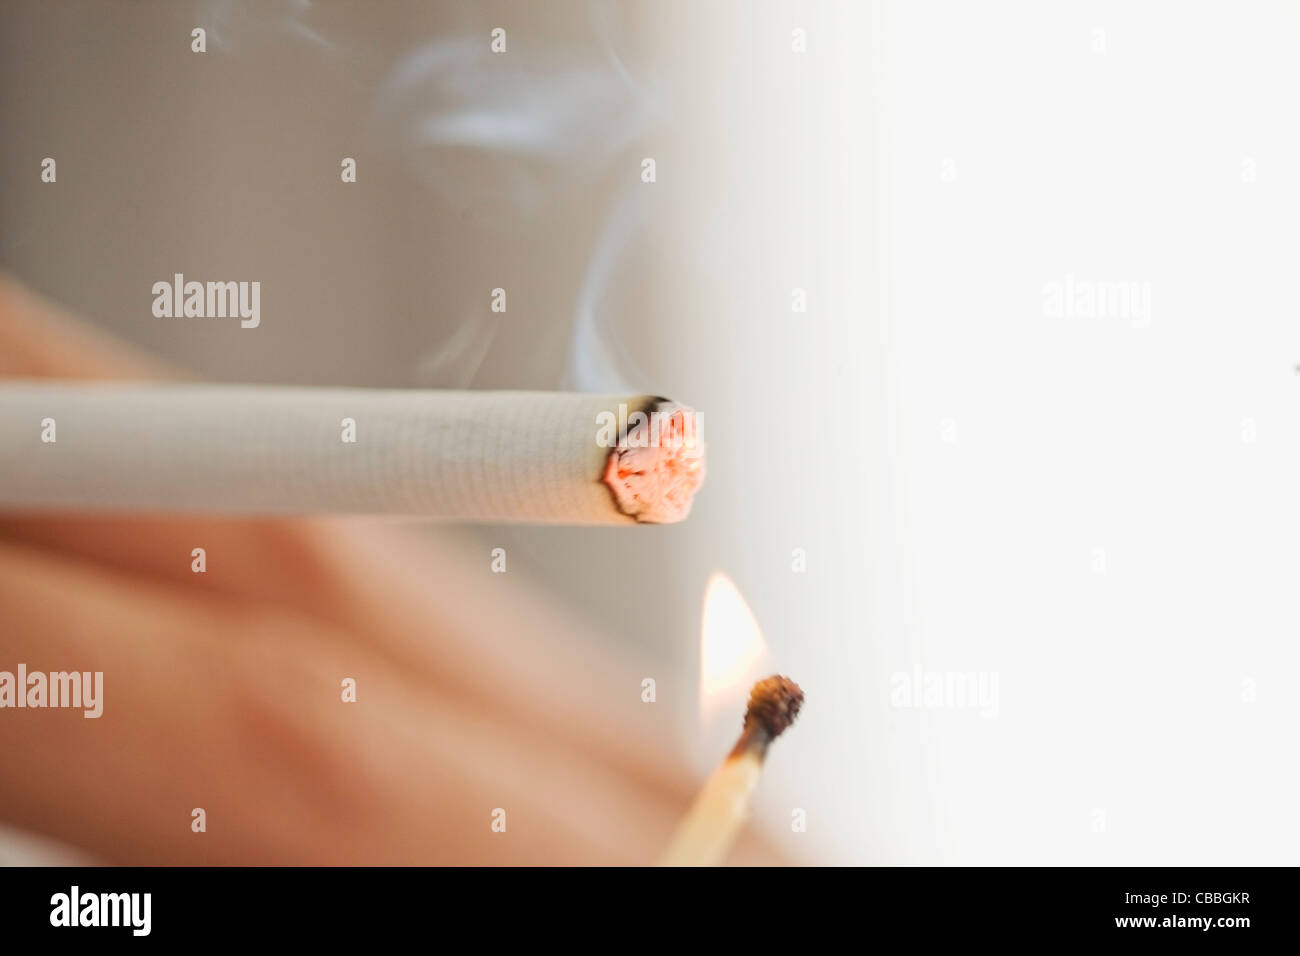 Close up of woman lighting cigarette - Stock Image